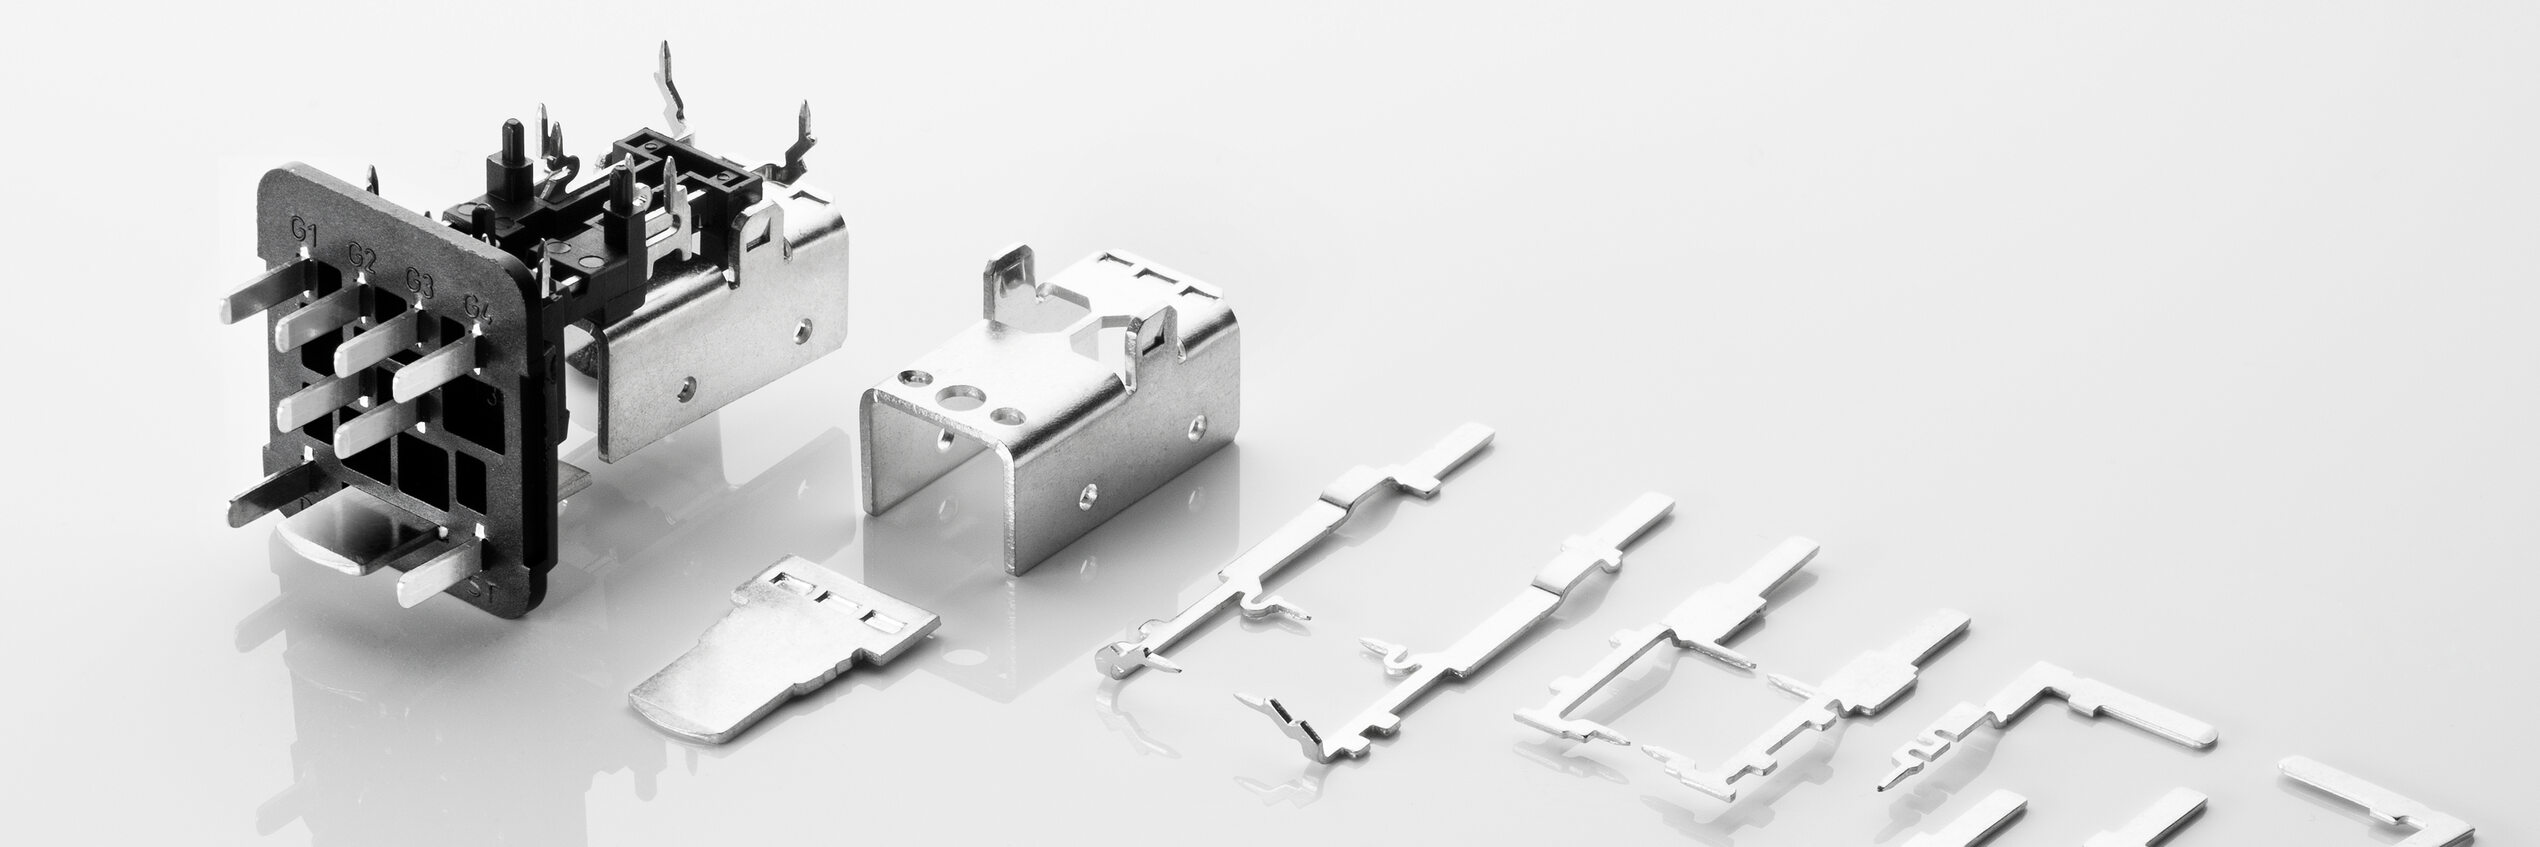 Our solutions for the production of connectors